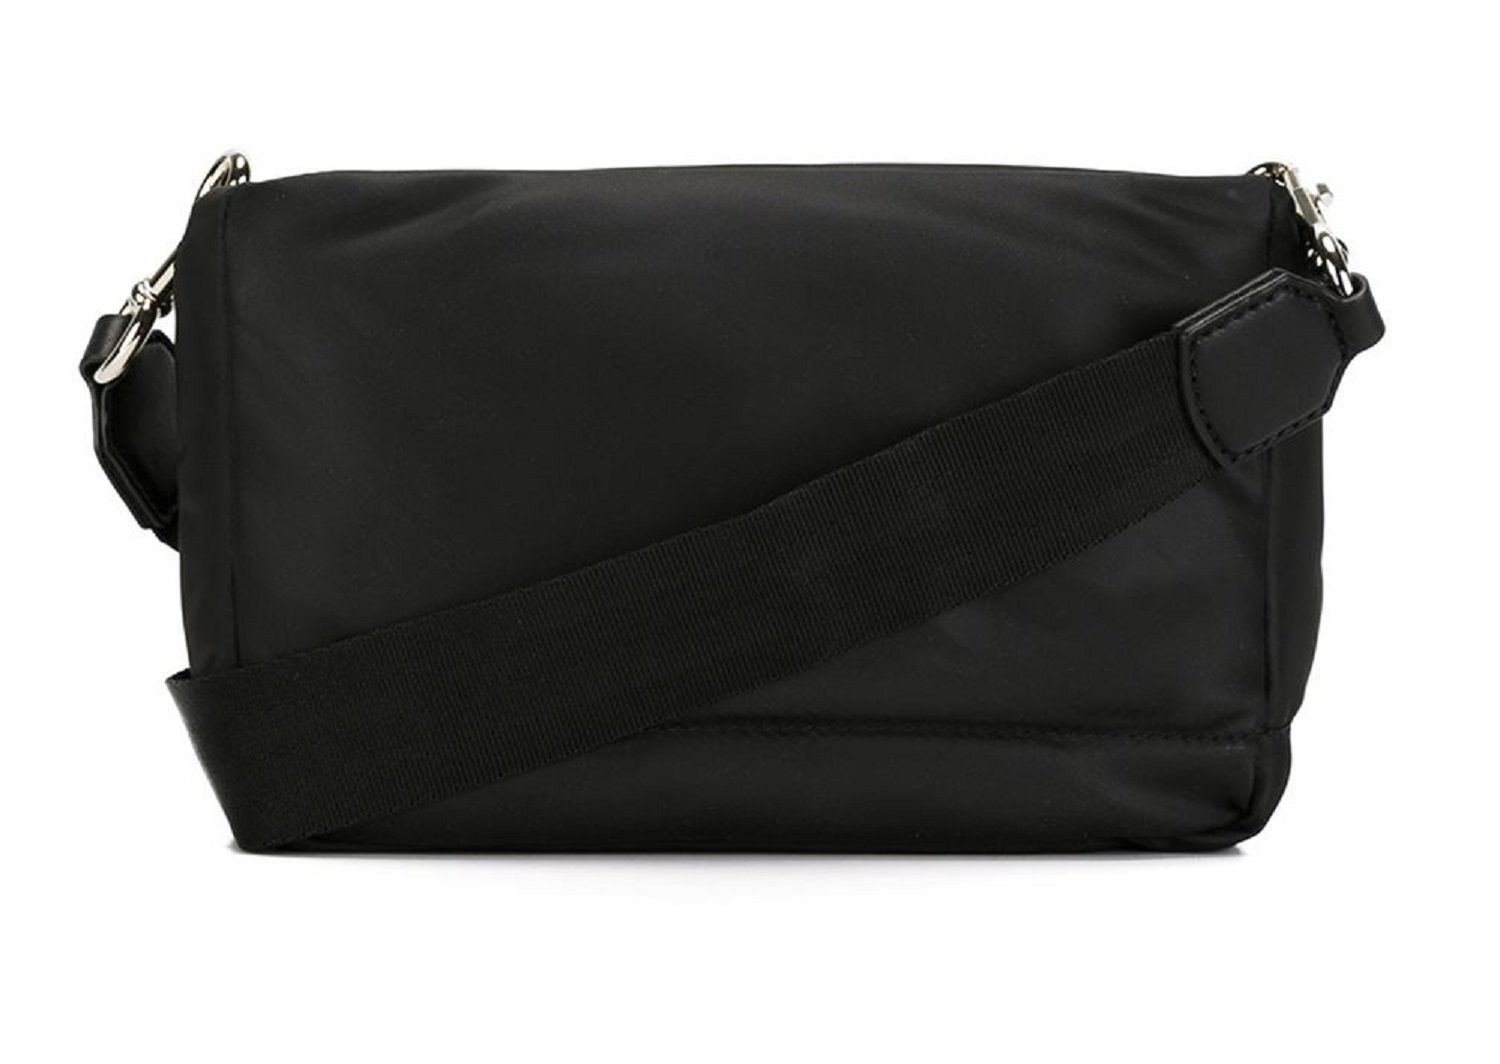 d5be8679d Marc Jacobs Mallorca Messenger Bag MSRP $225 and 50 similar items